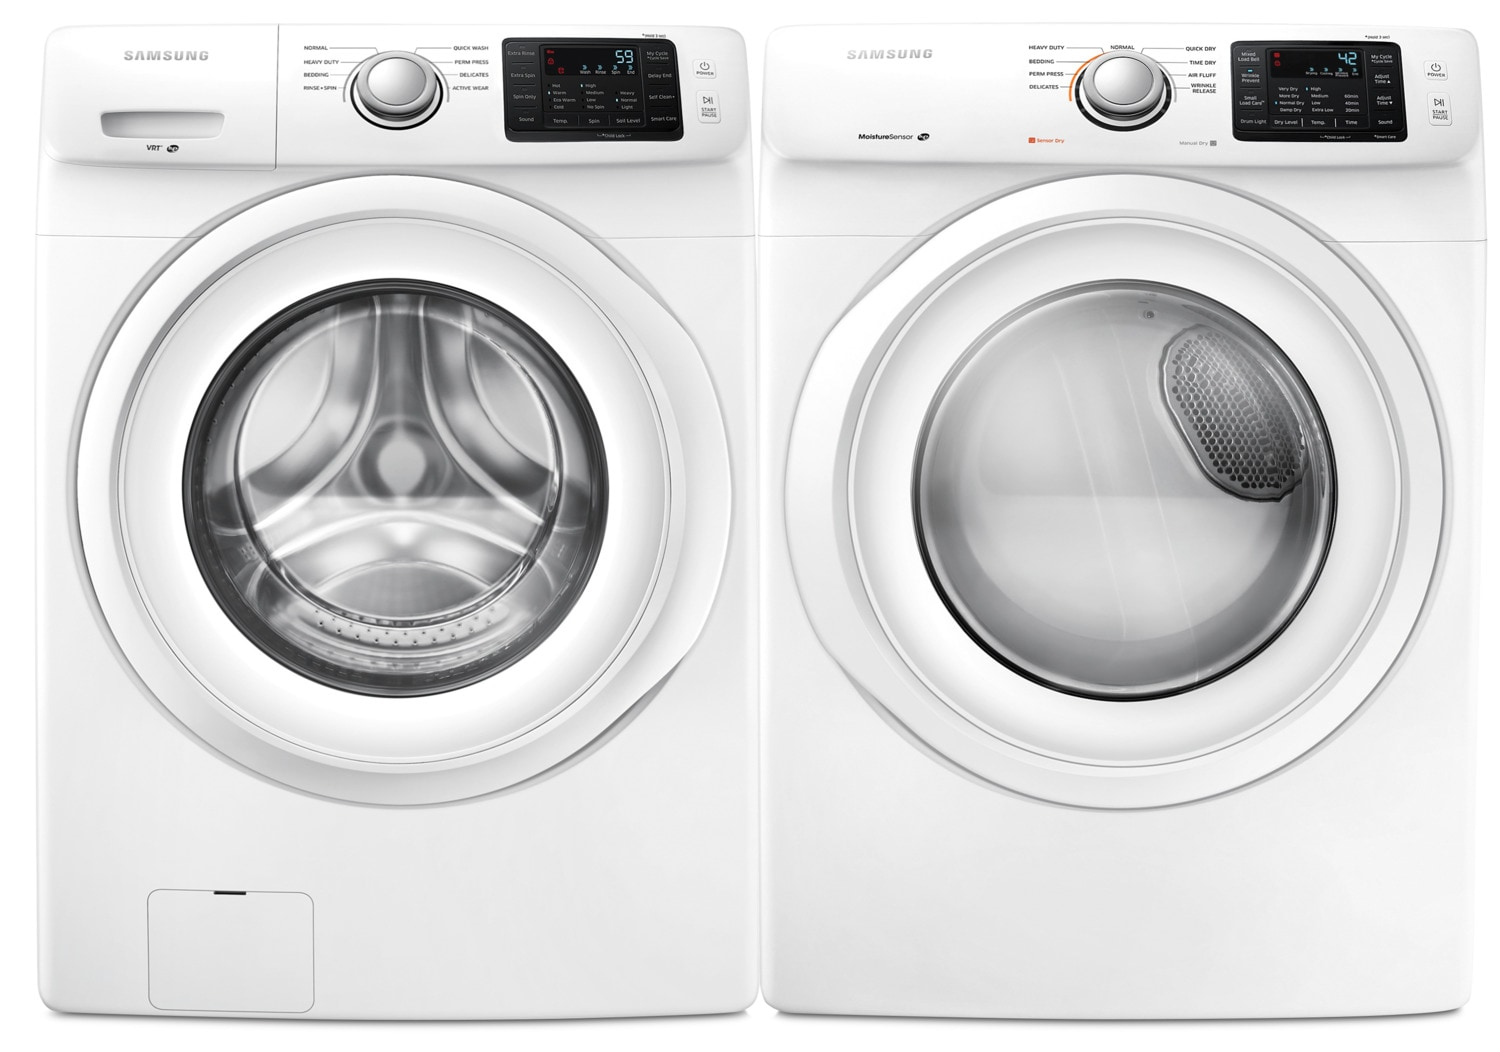 Samsung 5.2 Cu. Ft. Front-Load Washer and 7.5 Cu. Ft. Electric Dryer